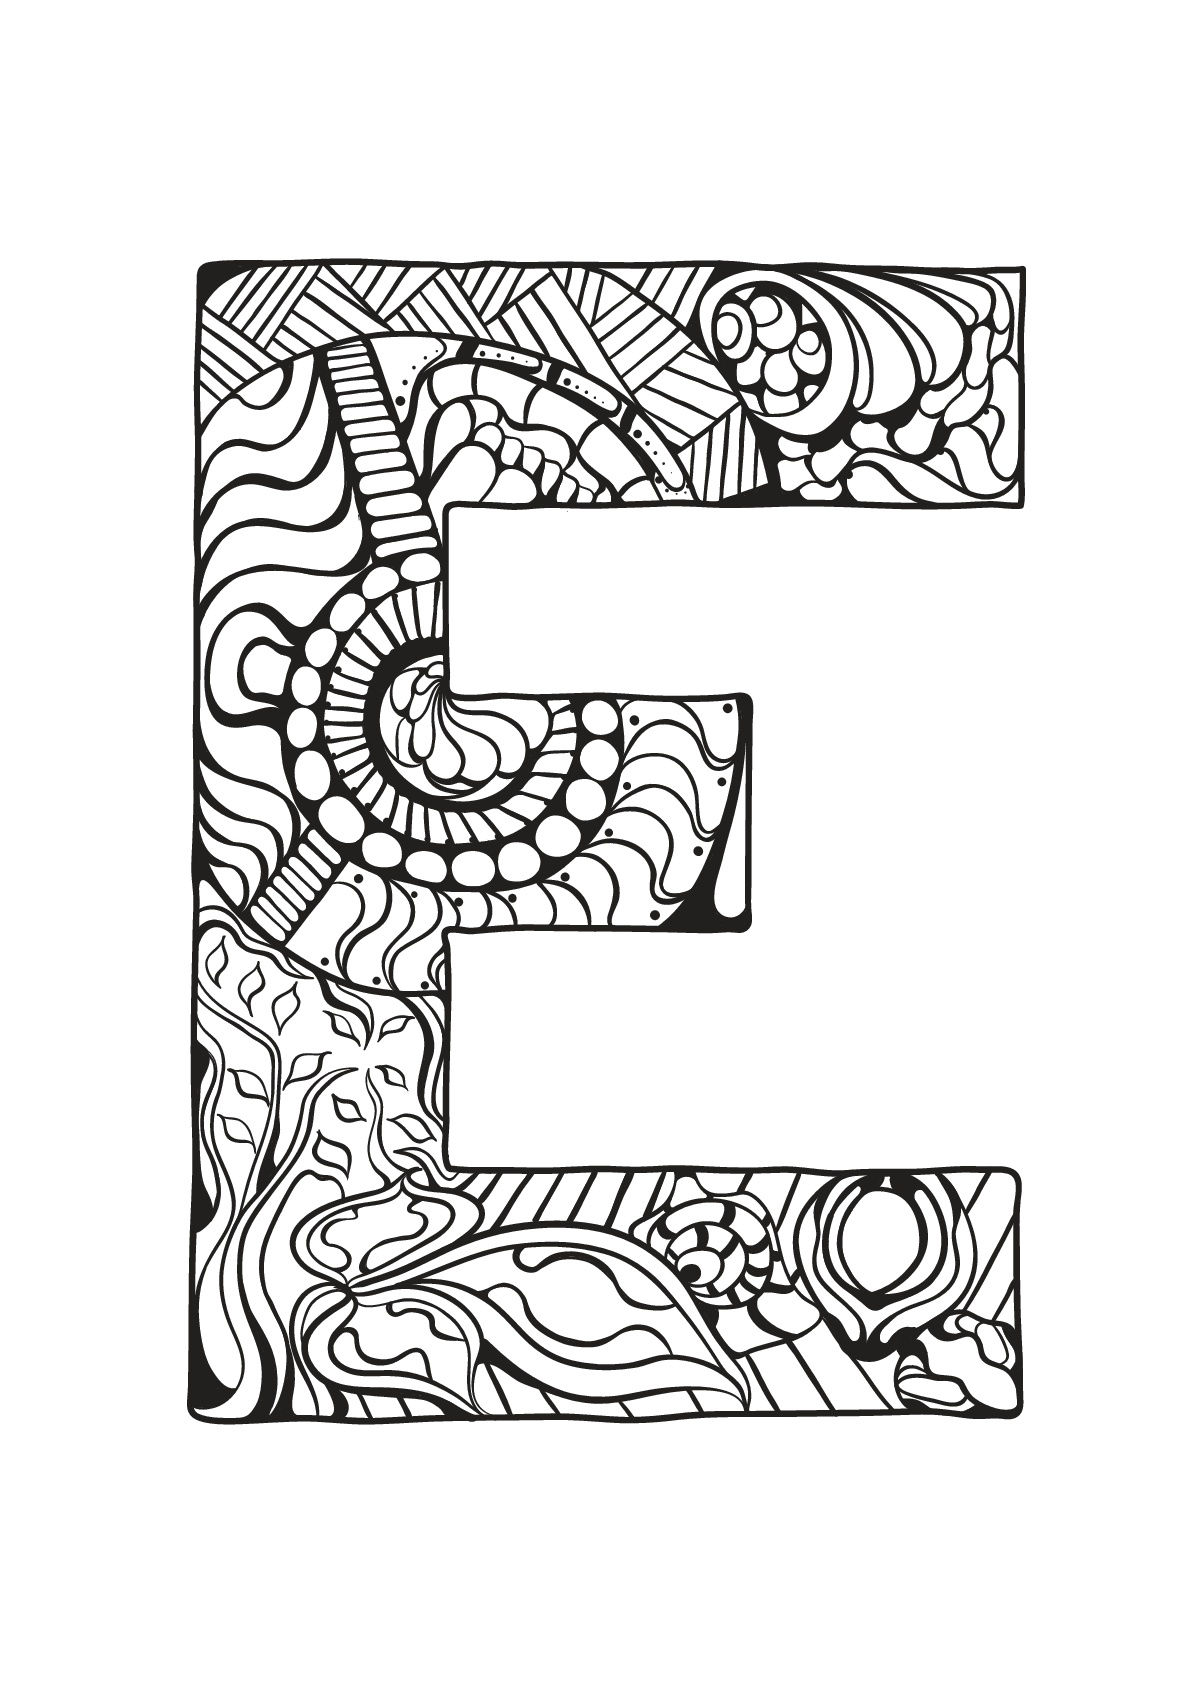 Alphabet free to color for children - Alphabet Kids Coloring Pages